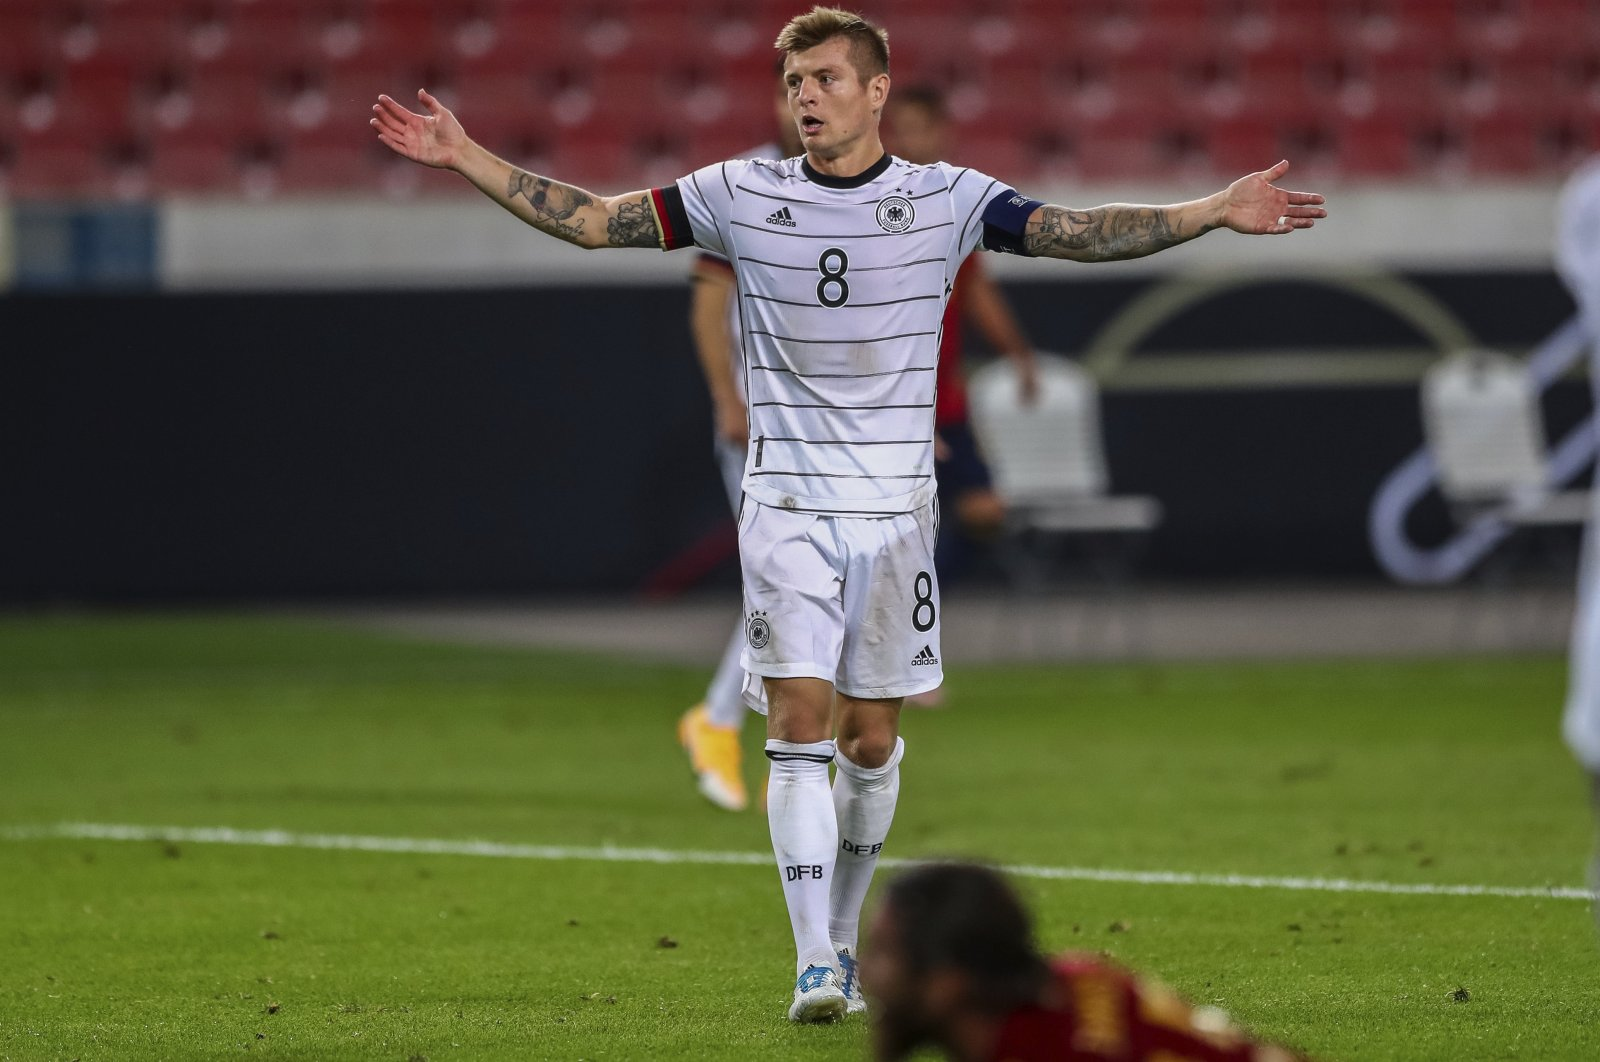 Germany's Toni Kroos reacts during a UEFA Nations League match against Spain, in Stuttgart, Germany, Sept. 3, 2020. (AP Photo)